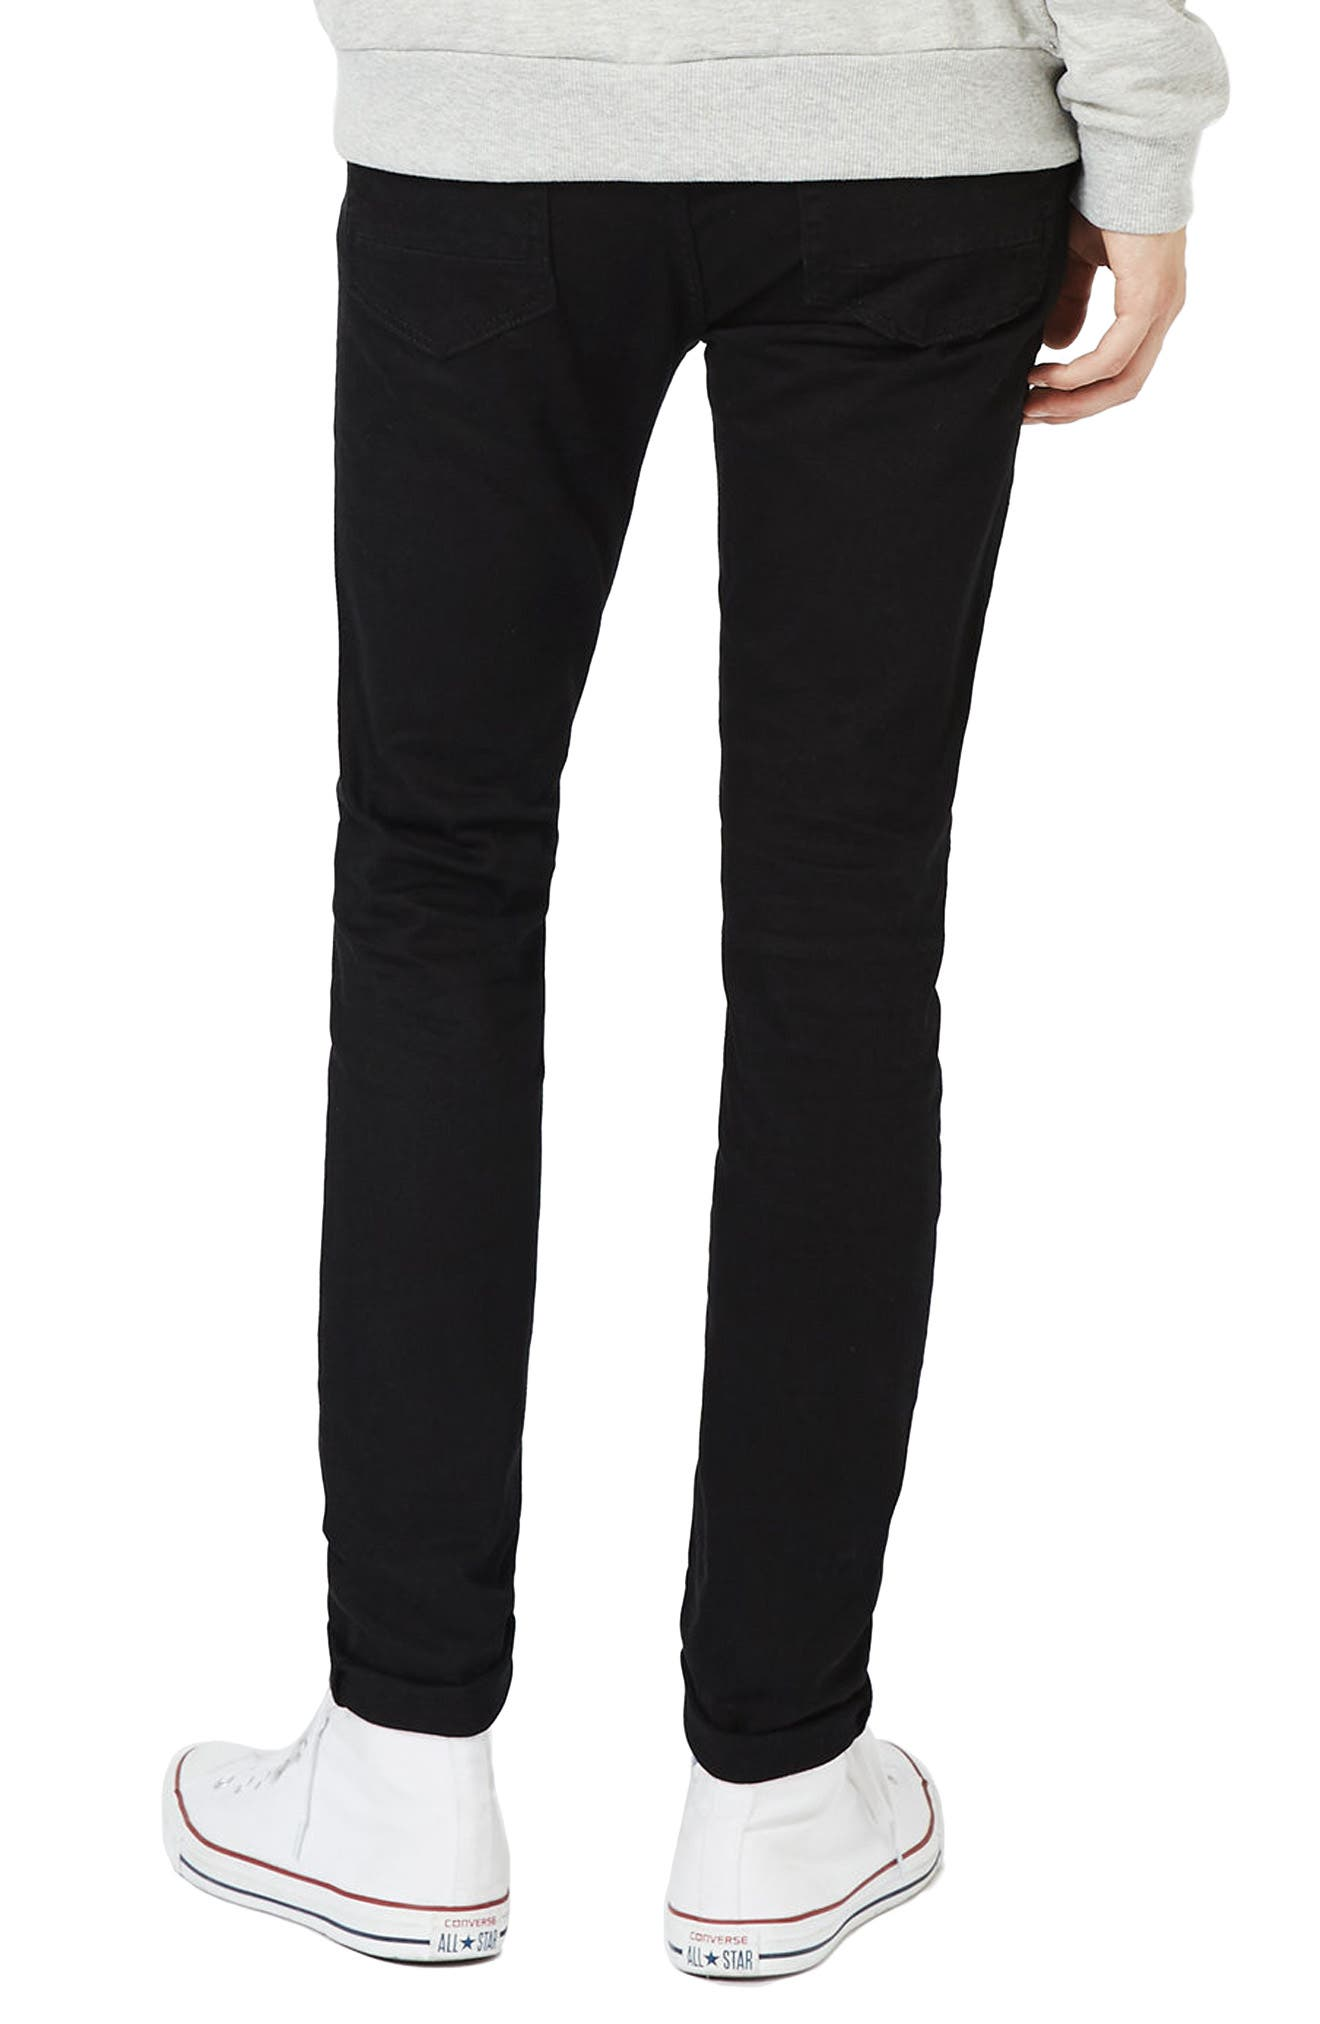 TOPMAN, Skinny Stretch Jeans, Alternate thumbnail 2, color, BLACK